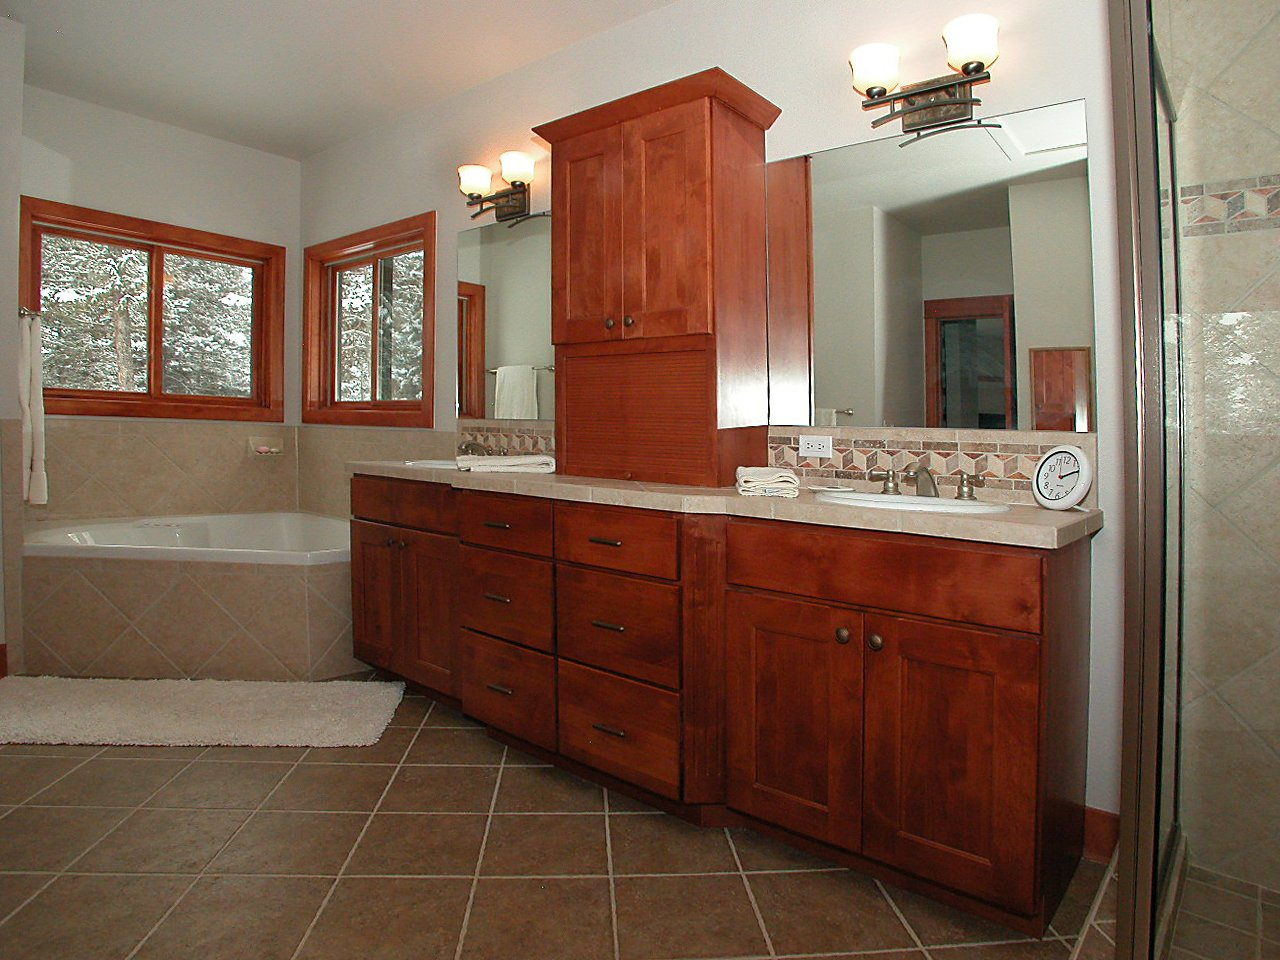 7880_homesteader_dr_MLS316700_HID234515_ROOMmasterbathroom.jpg